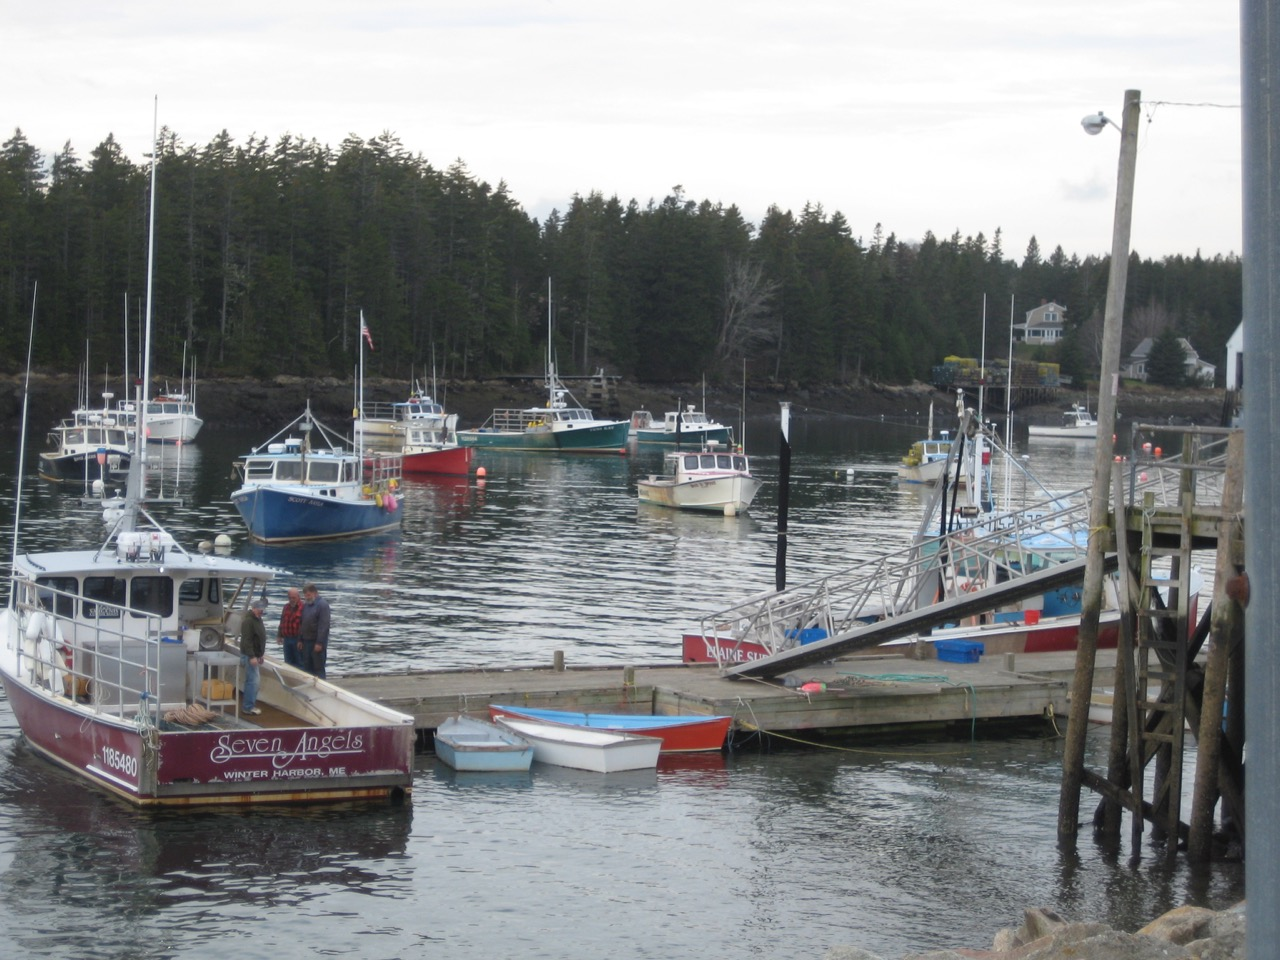 a photo of several boats docked in a harbor